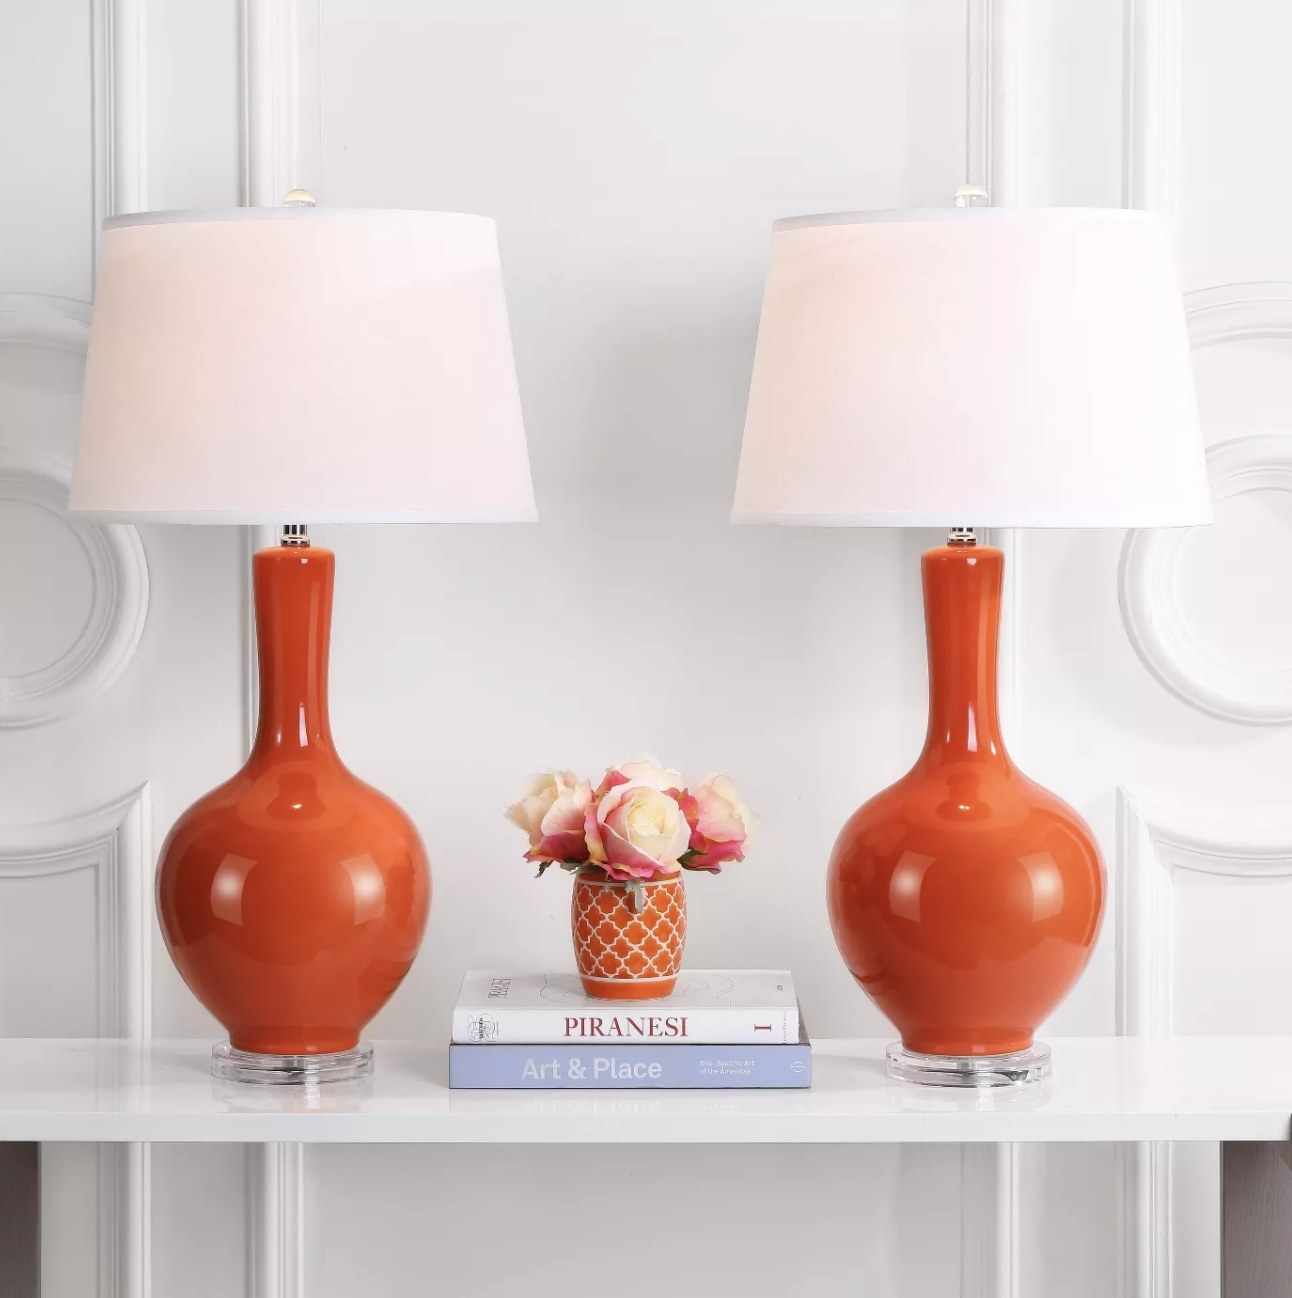 The two lamps with bright orange bases